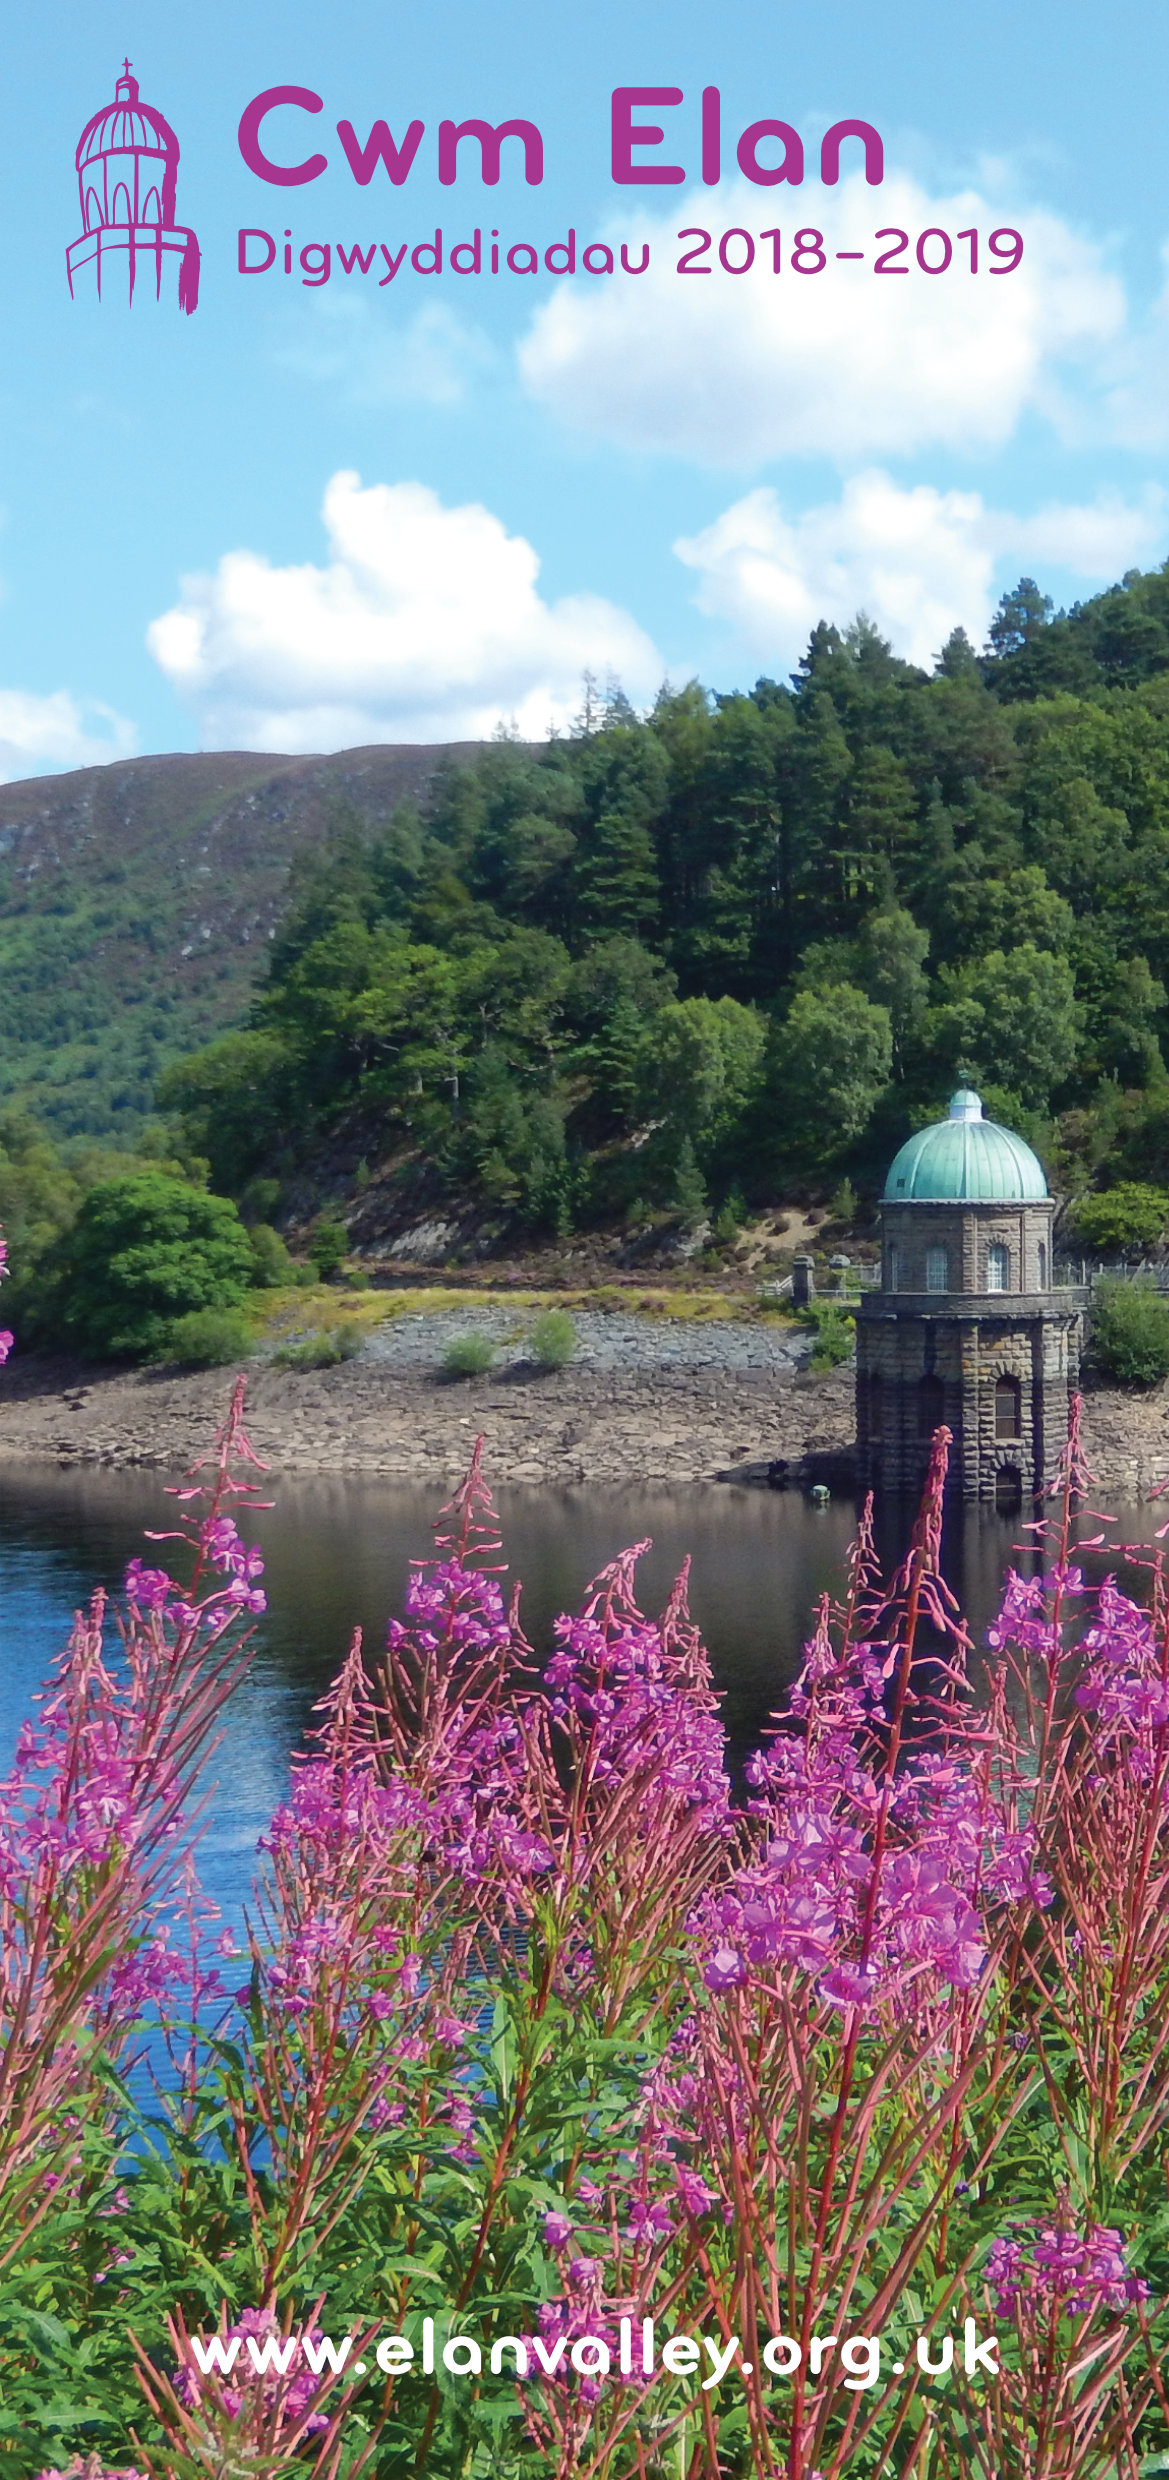 Elan Valley Events Guide 2018/2018 Welsh Version. Click to read.